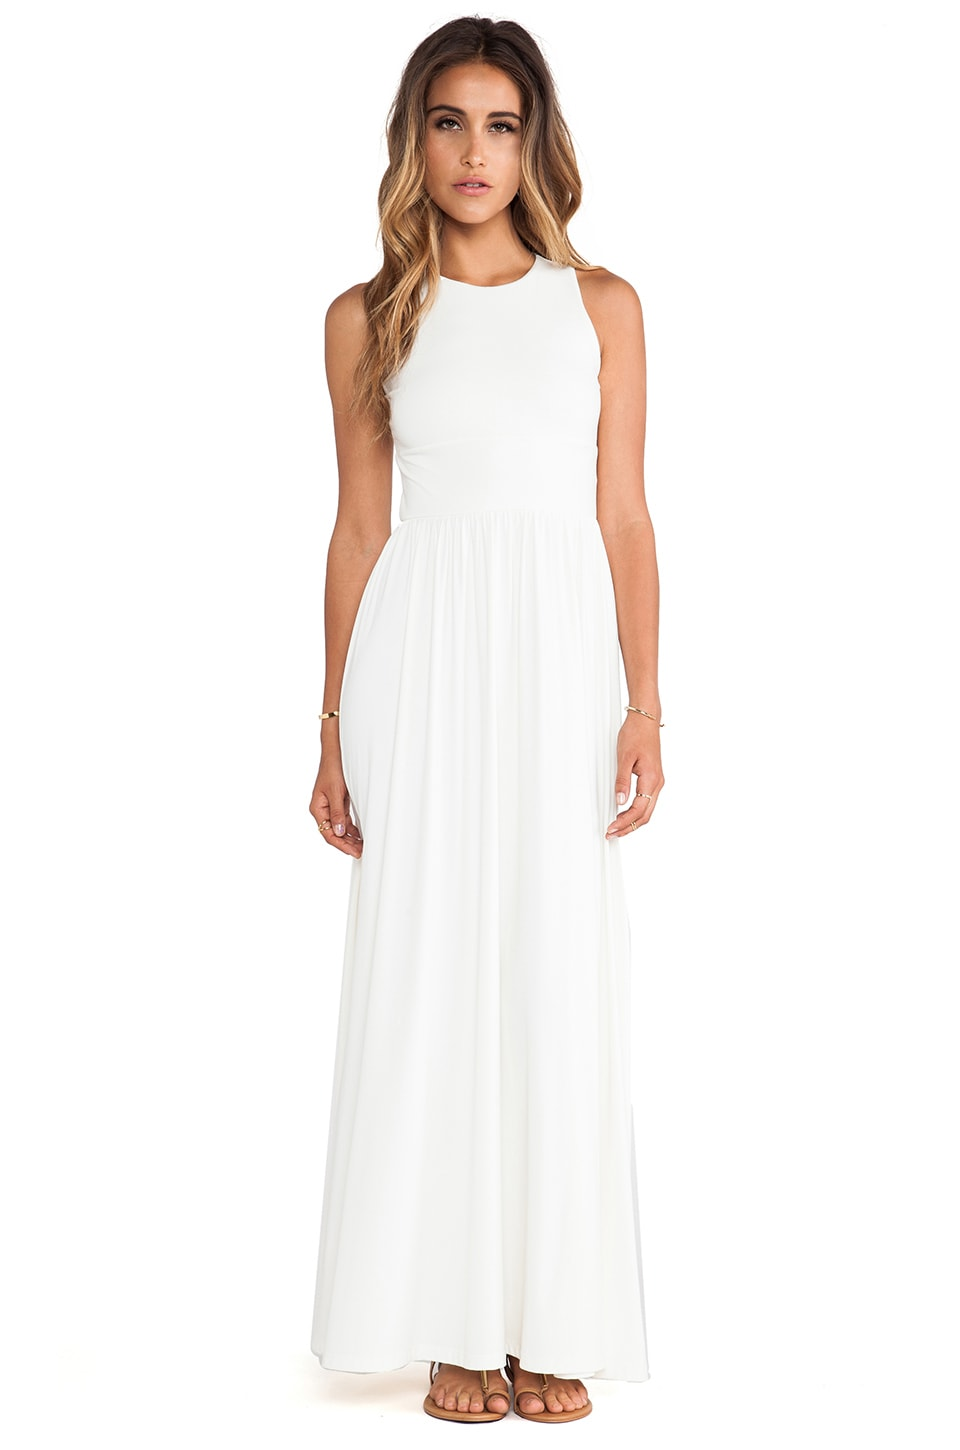 Susana Monaco Blaire Maxi Dress in Meringue